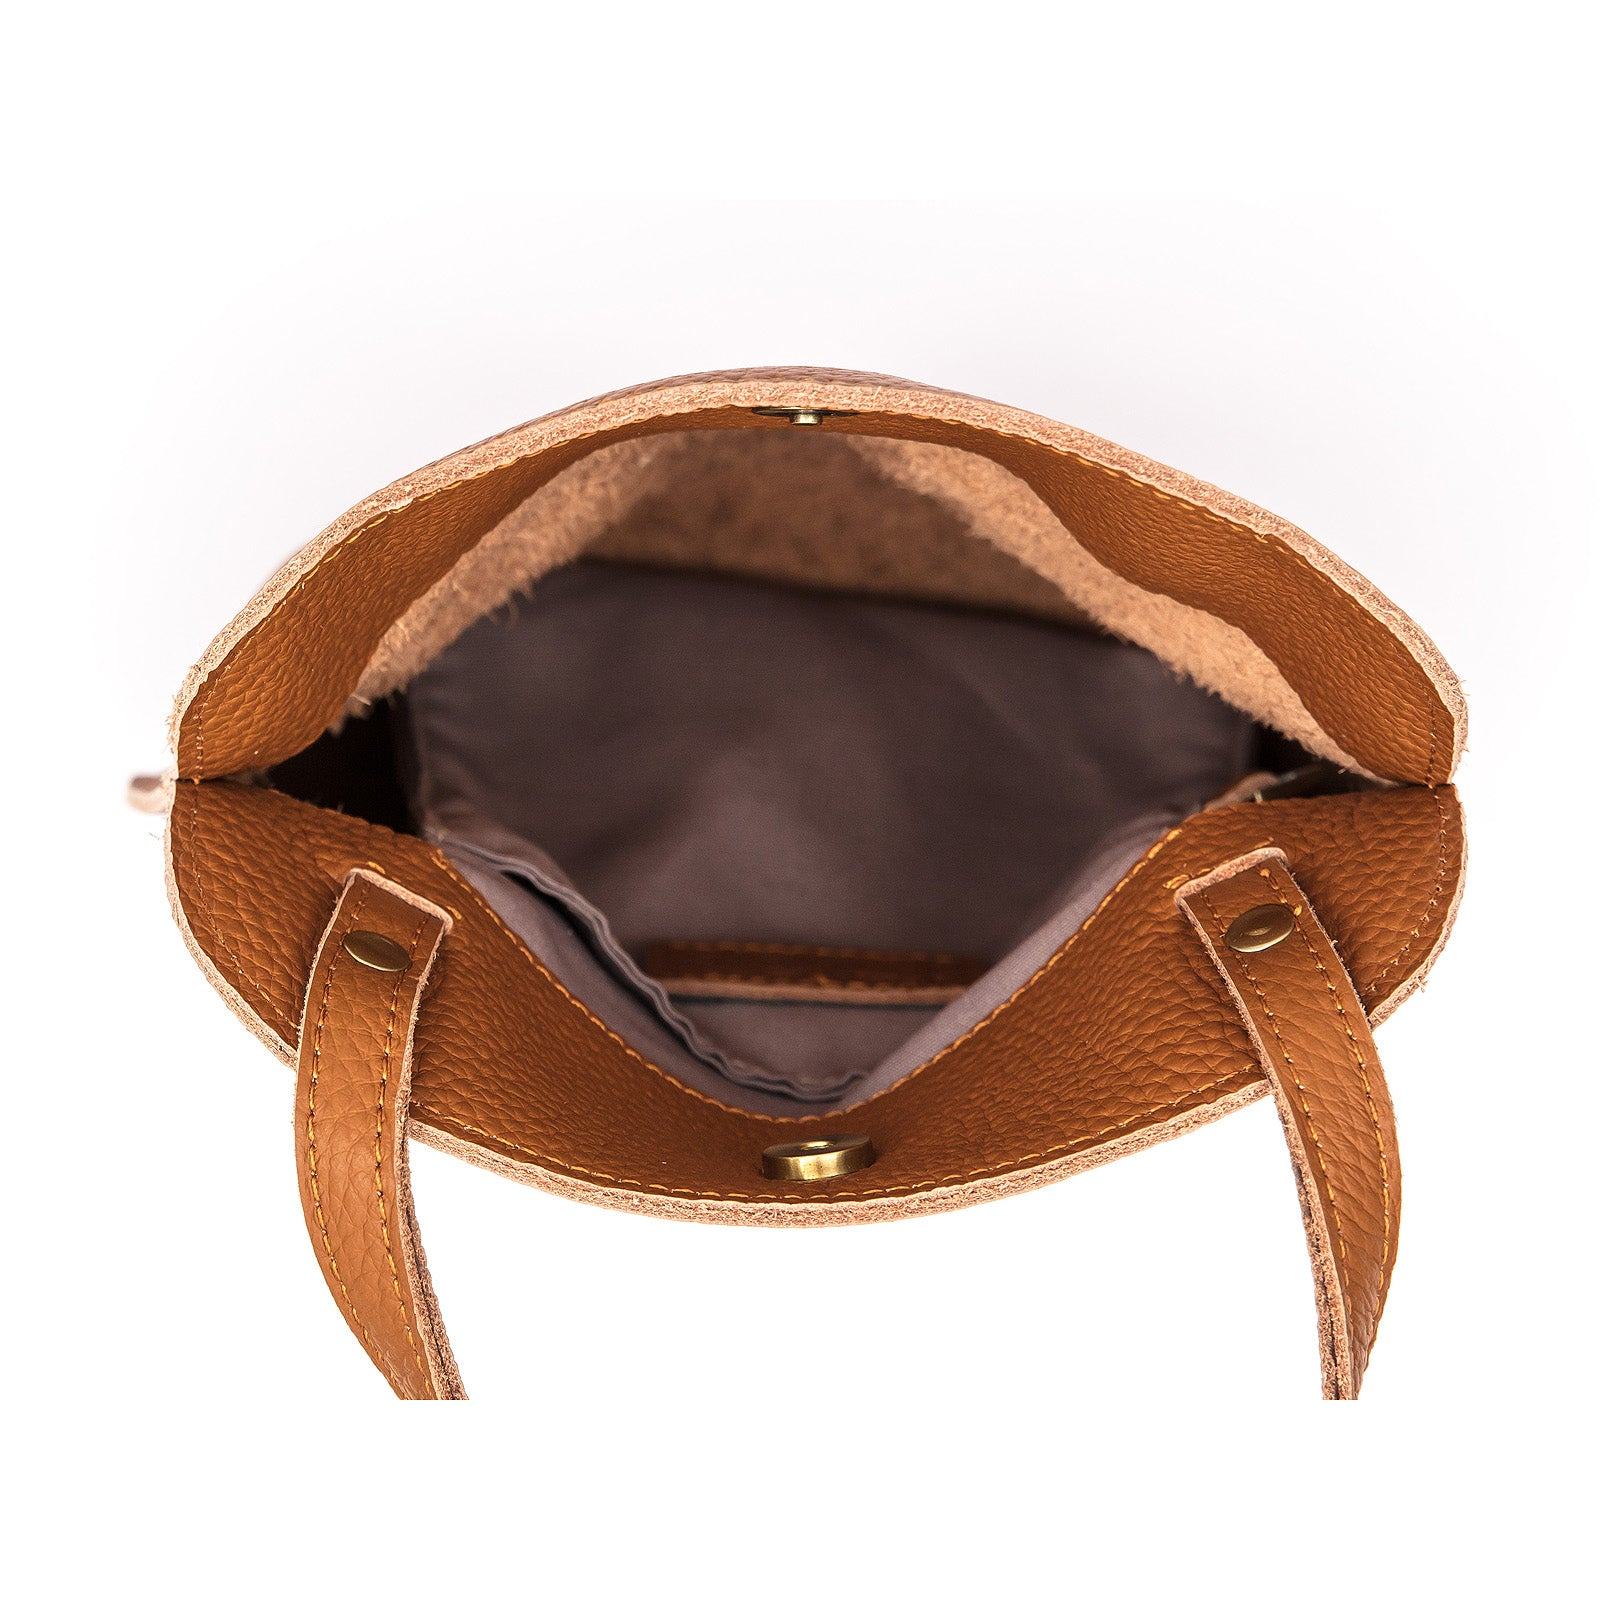 Adventurer leather bag